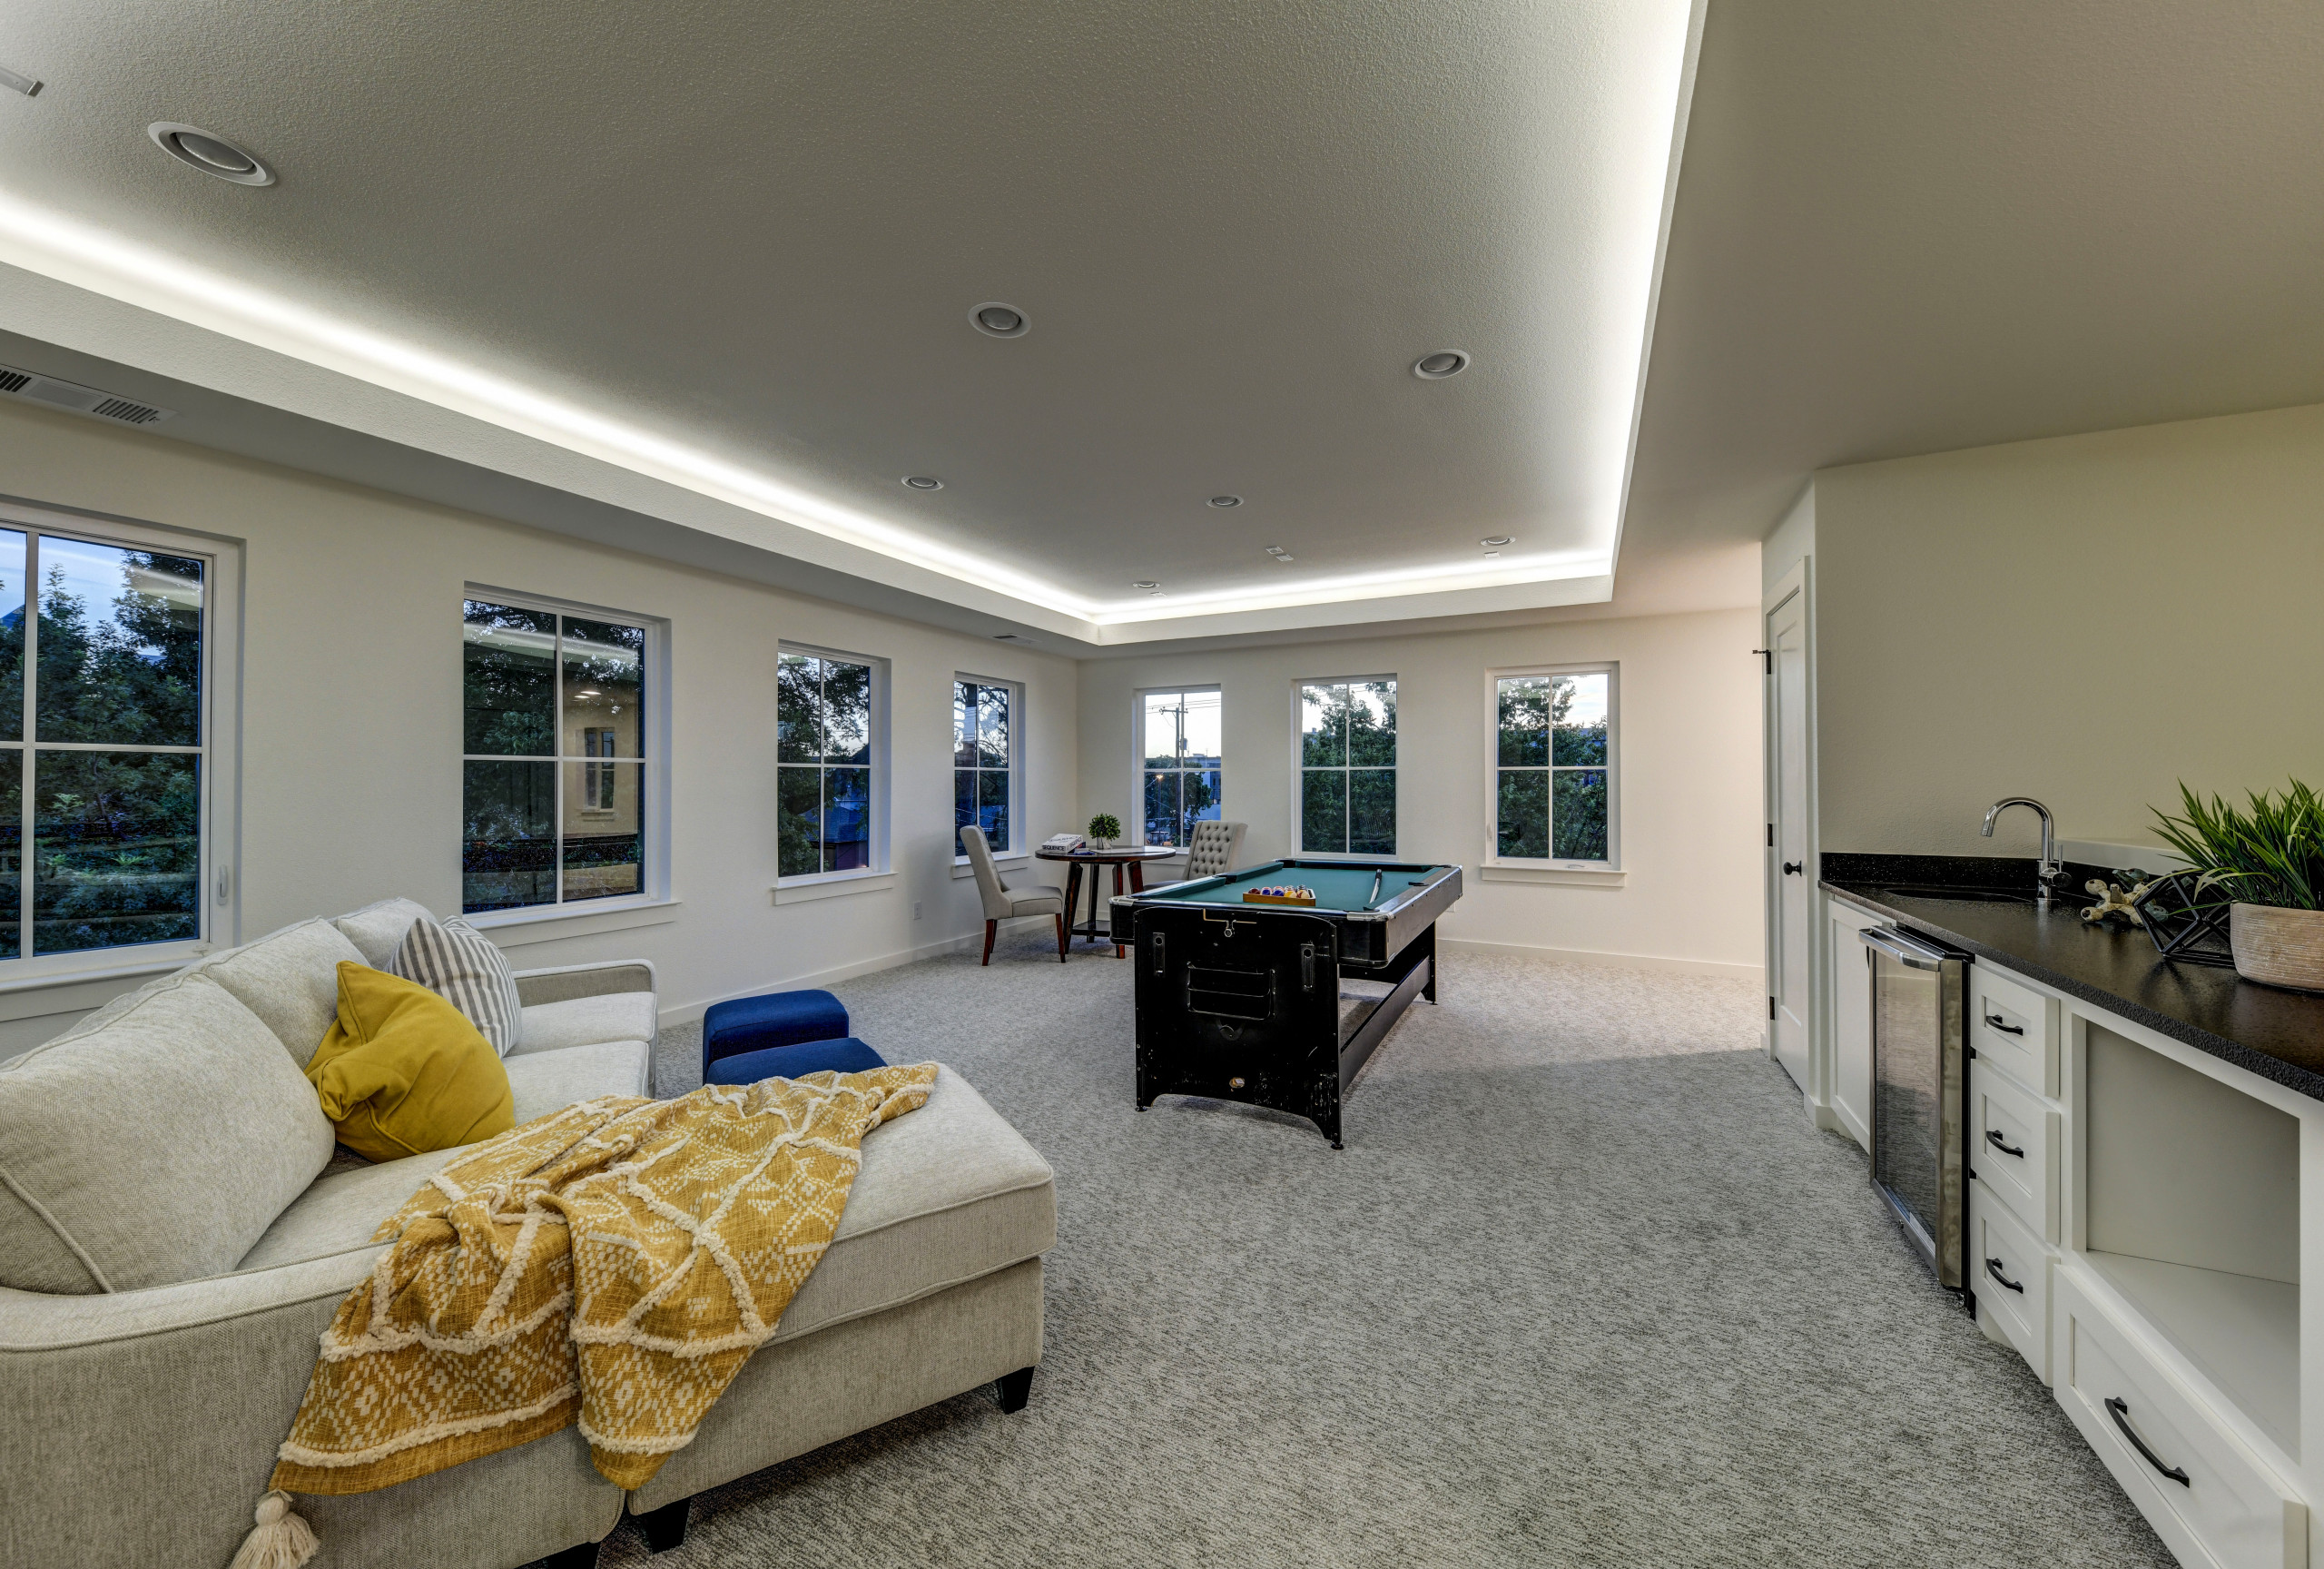 Family Room, Game Room, Movie Room, Entertainment Room